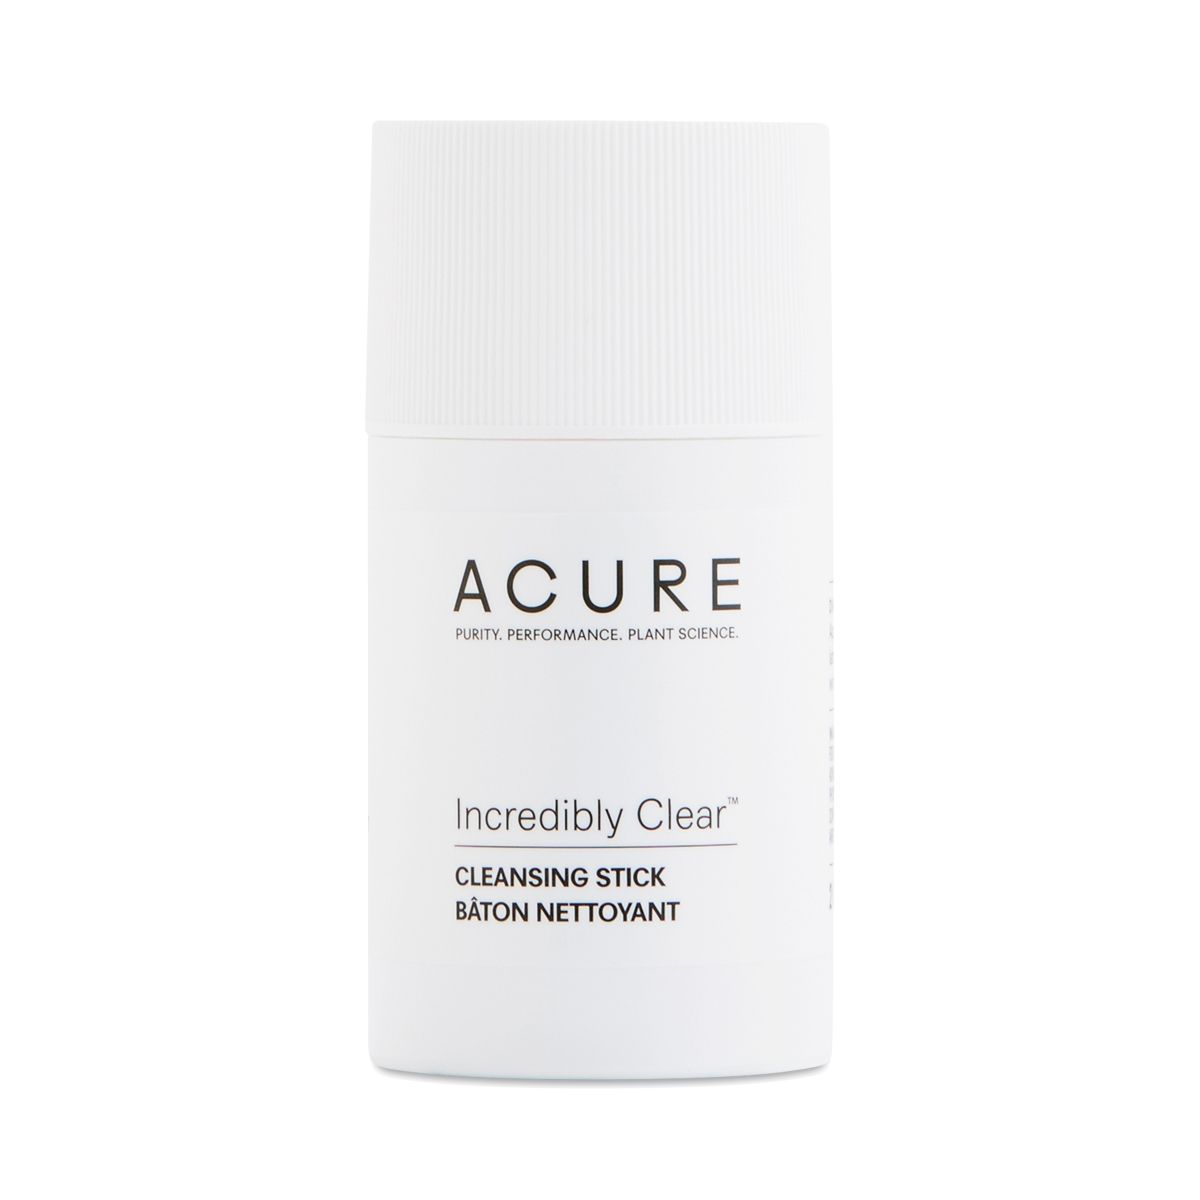 Acure Incredibly Clear Cleansing Stick 2 Oz Tube